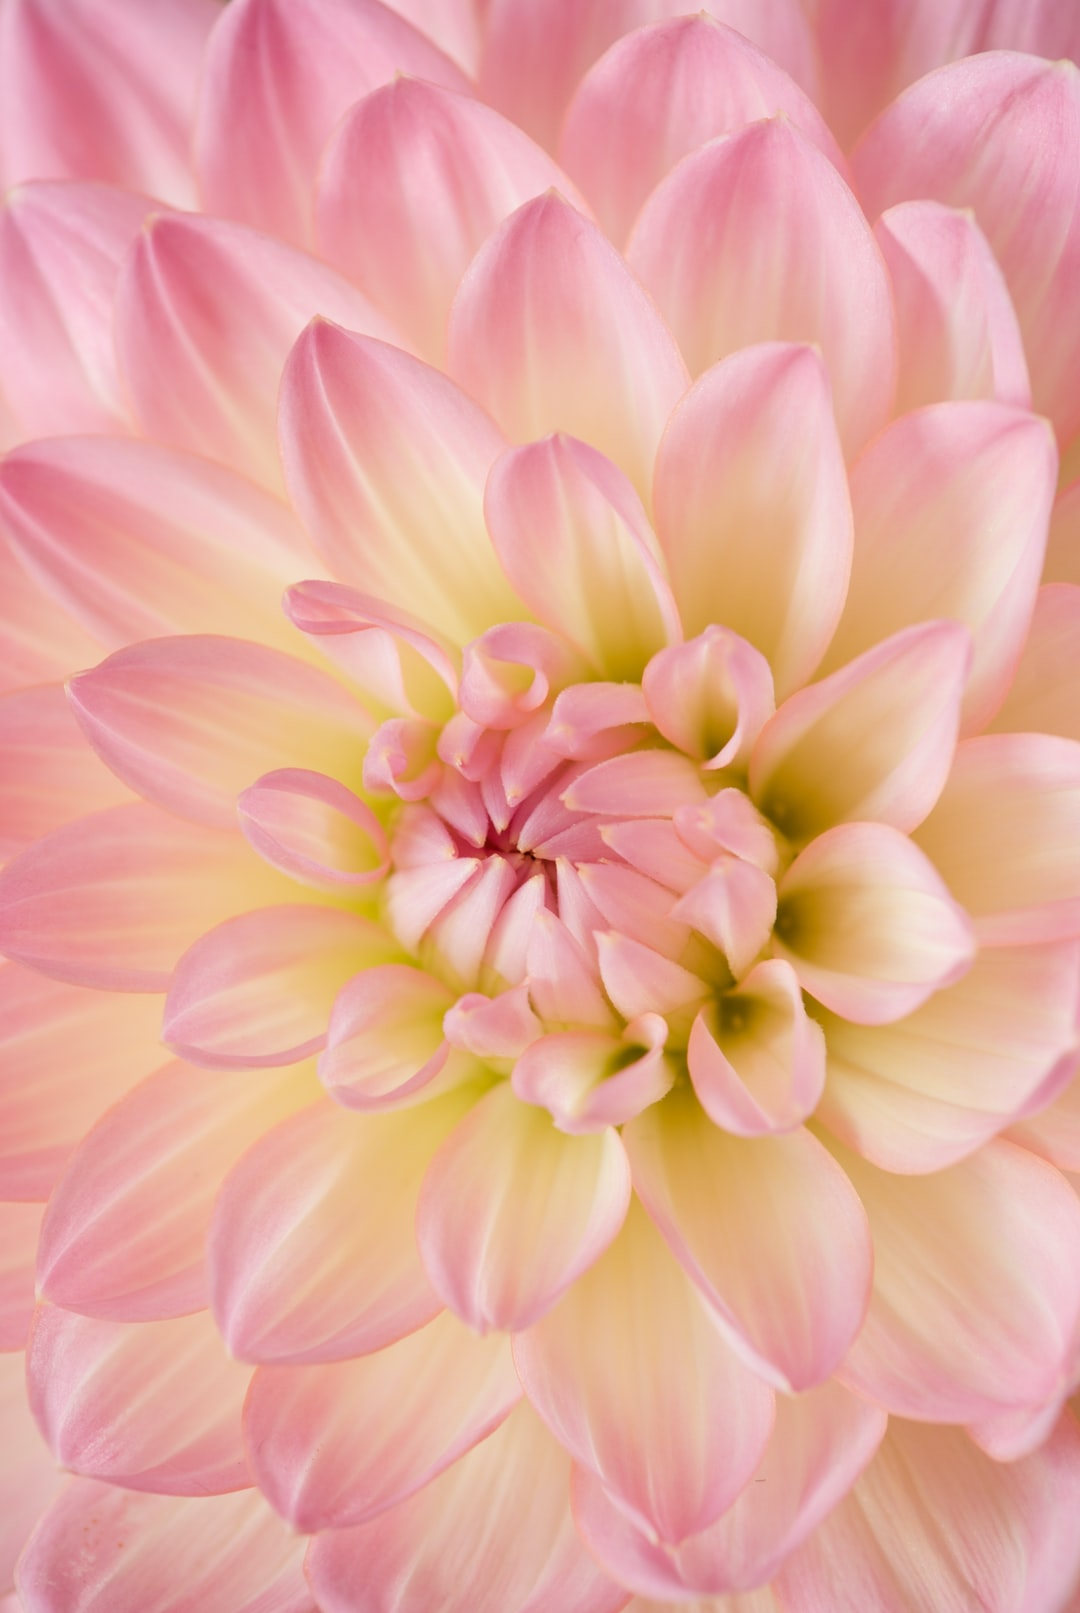 Taking close up macro photographs of flowers have always been a passion of mine. This radiant dahlia has the perfect array of light pink petals.